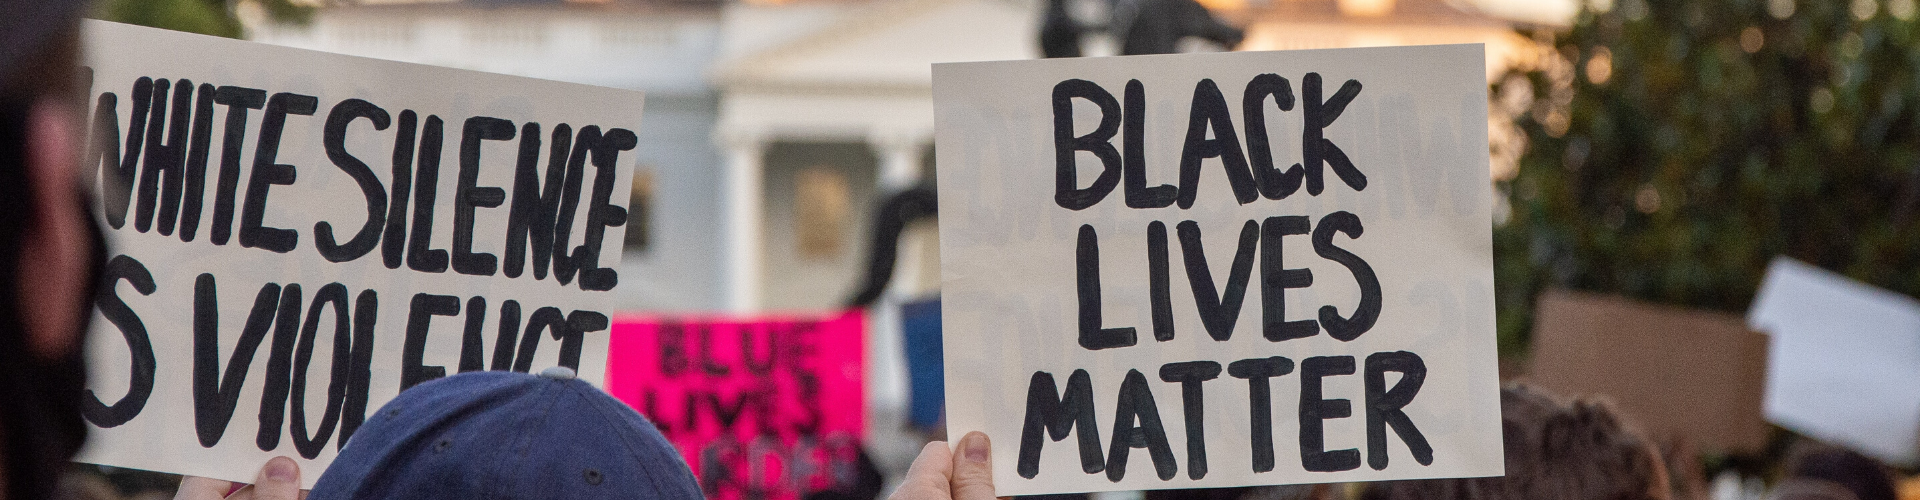 Racism and the black lives matter movement